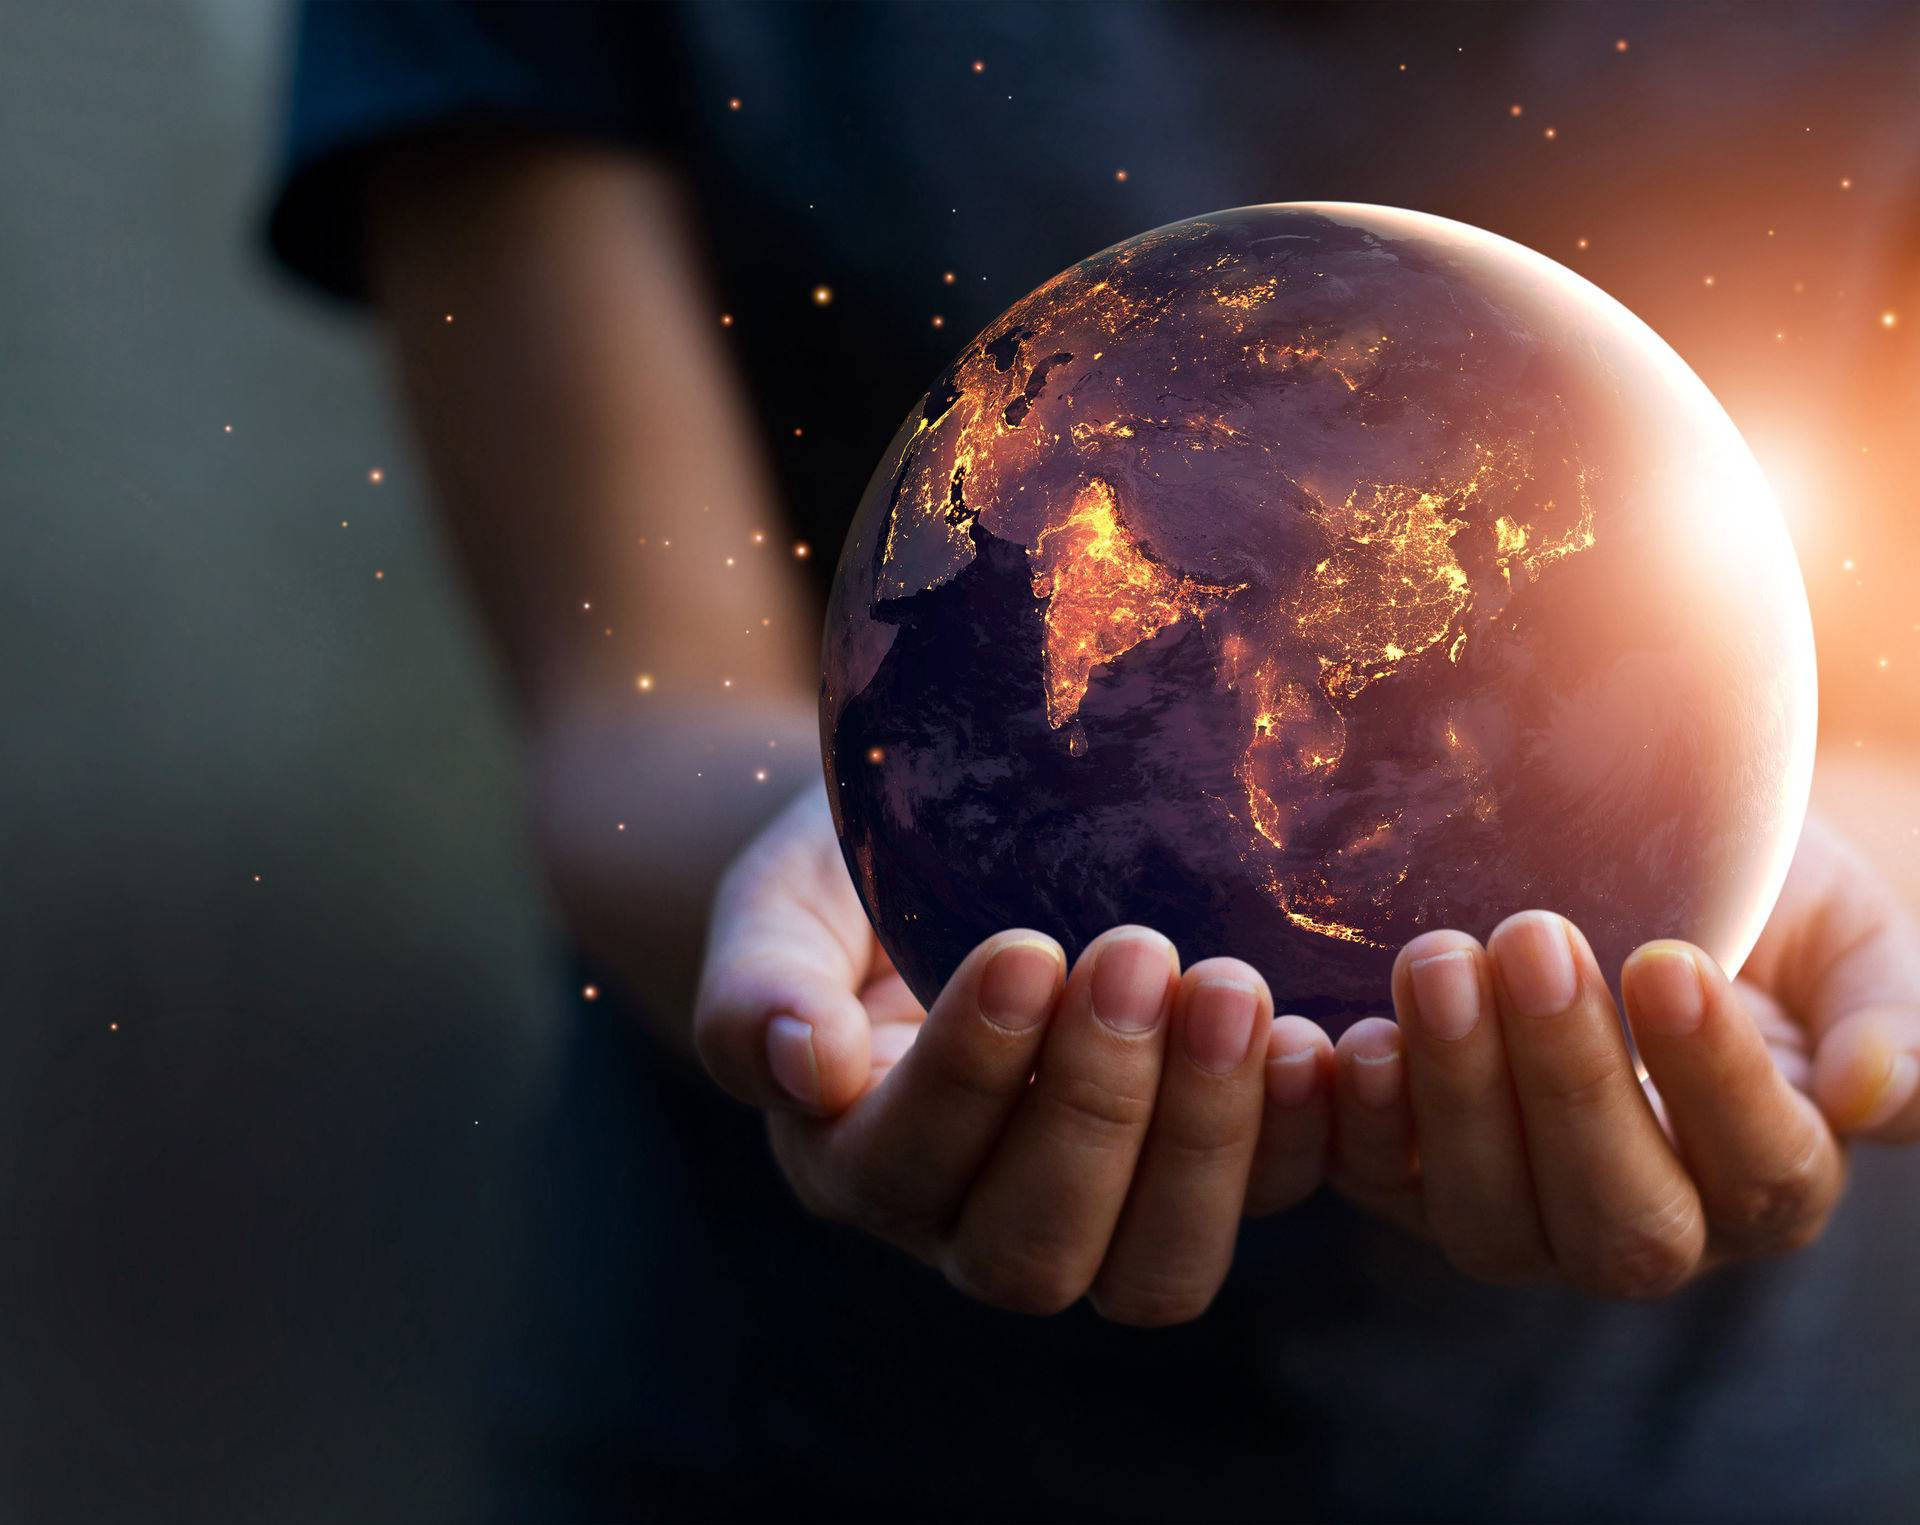 Earth at night was holding in human hands. Earth day. Energy sav